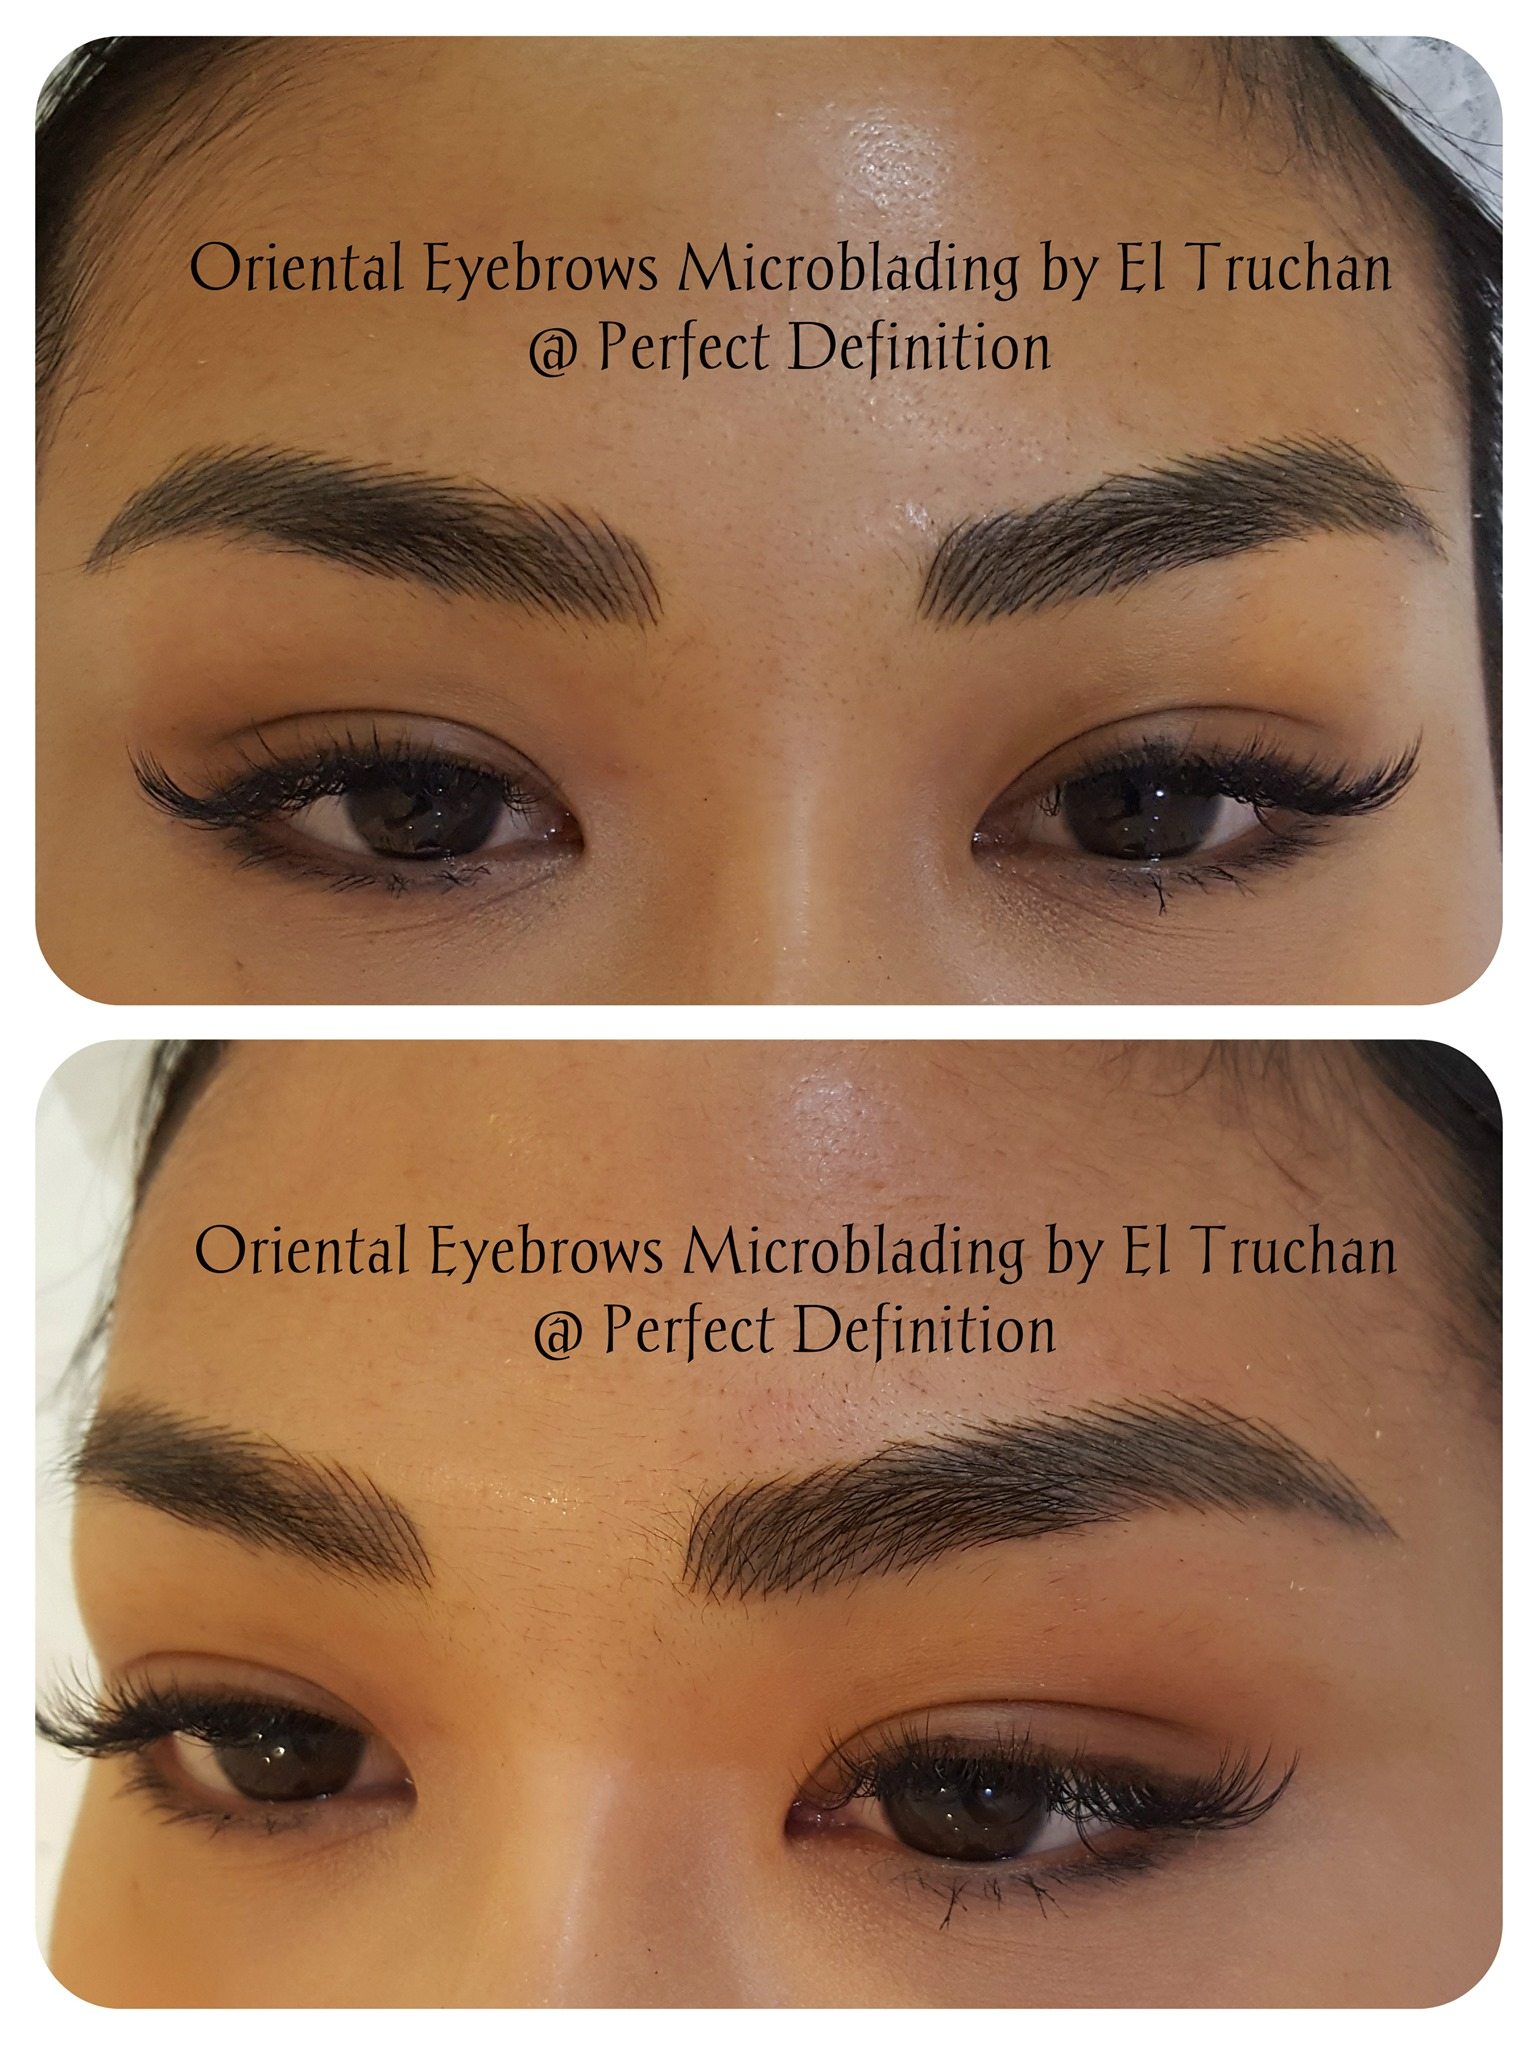 Oriental Eyebrows microblading by El Tru